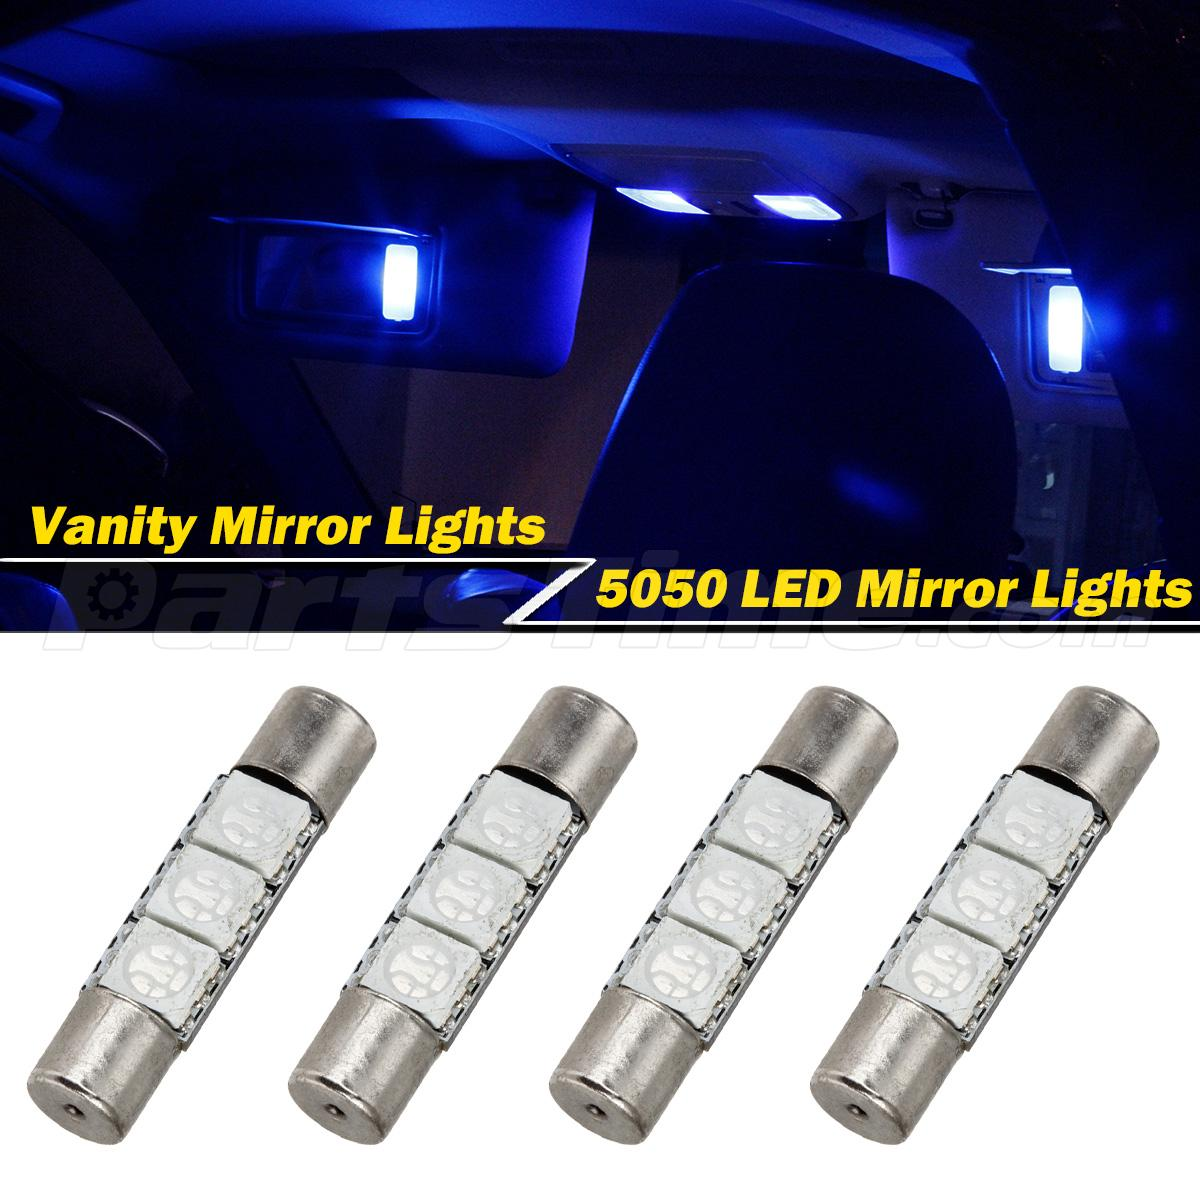 Vanity Mirror Led Light Bulbs : 4 Xenon Blue 3 SMD 6641 LED Bulbs for Car Sun Visor Vanity Mirror Lights eBay